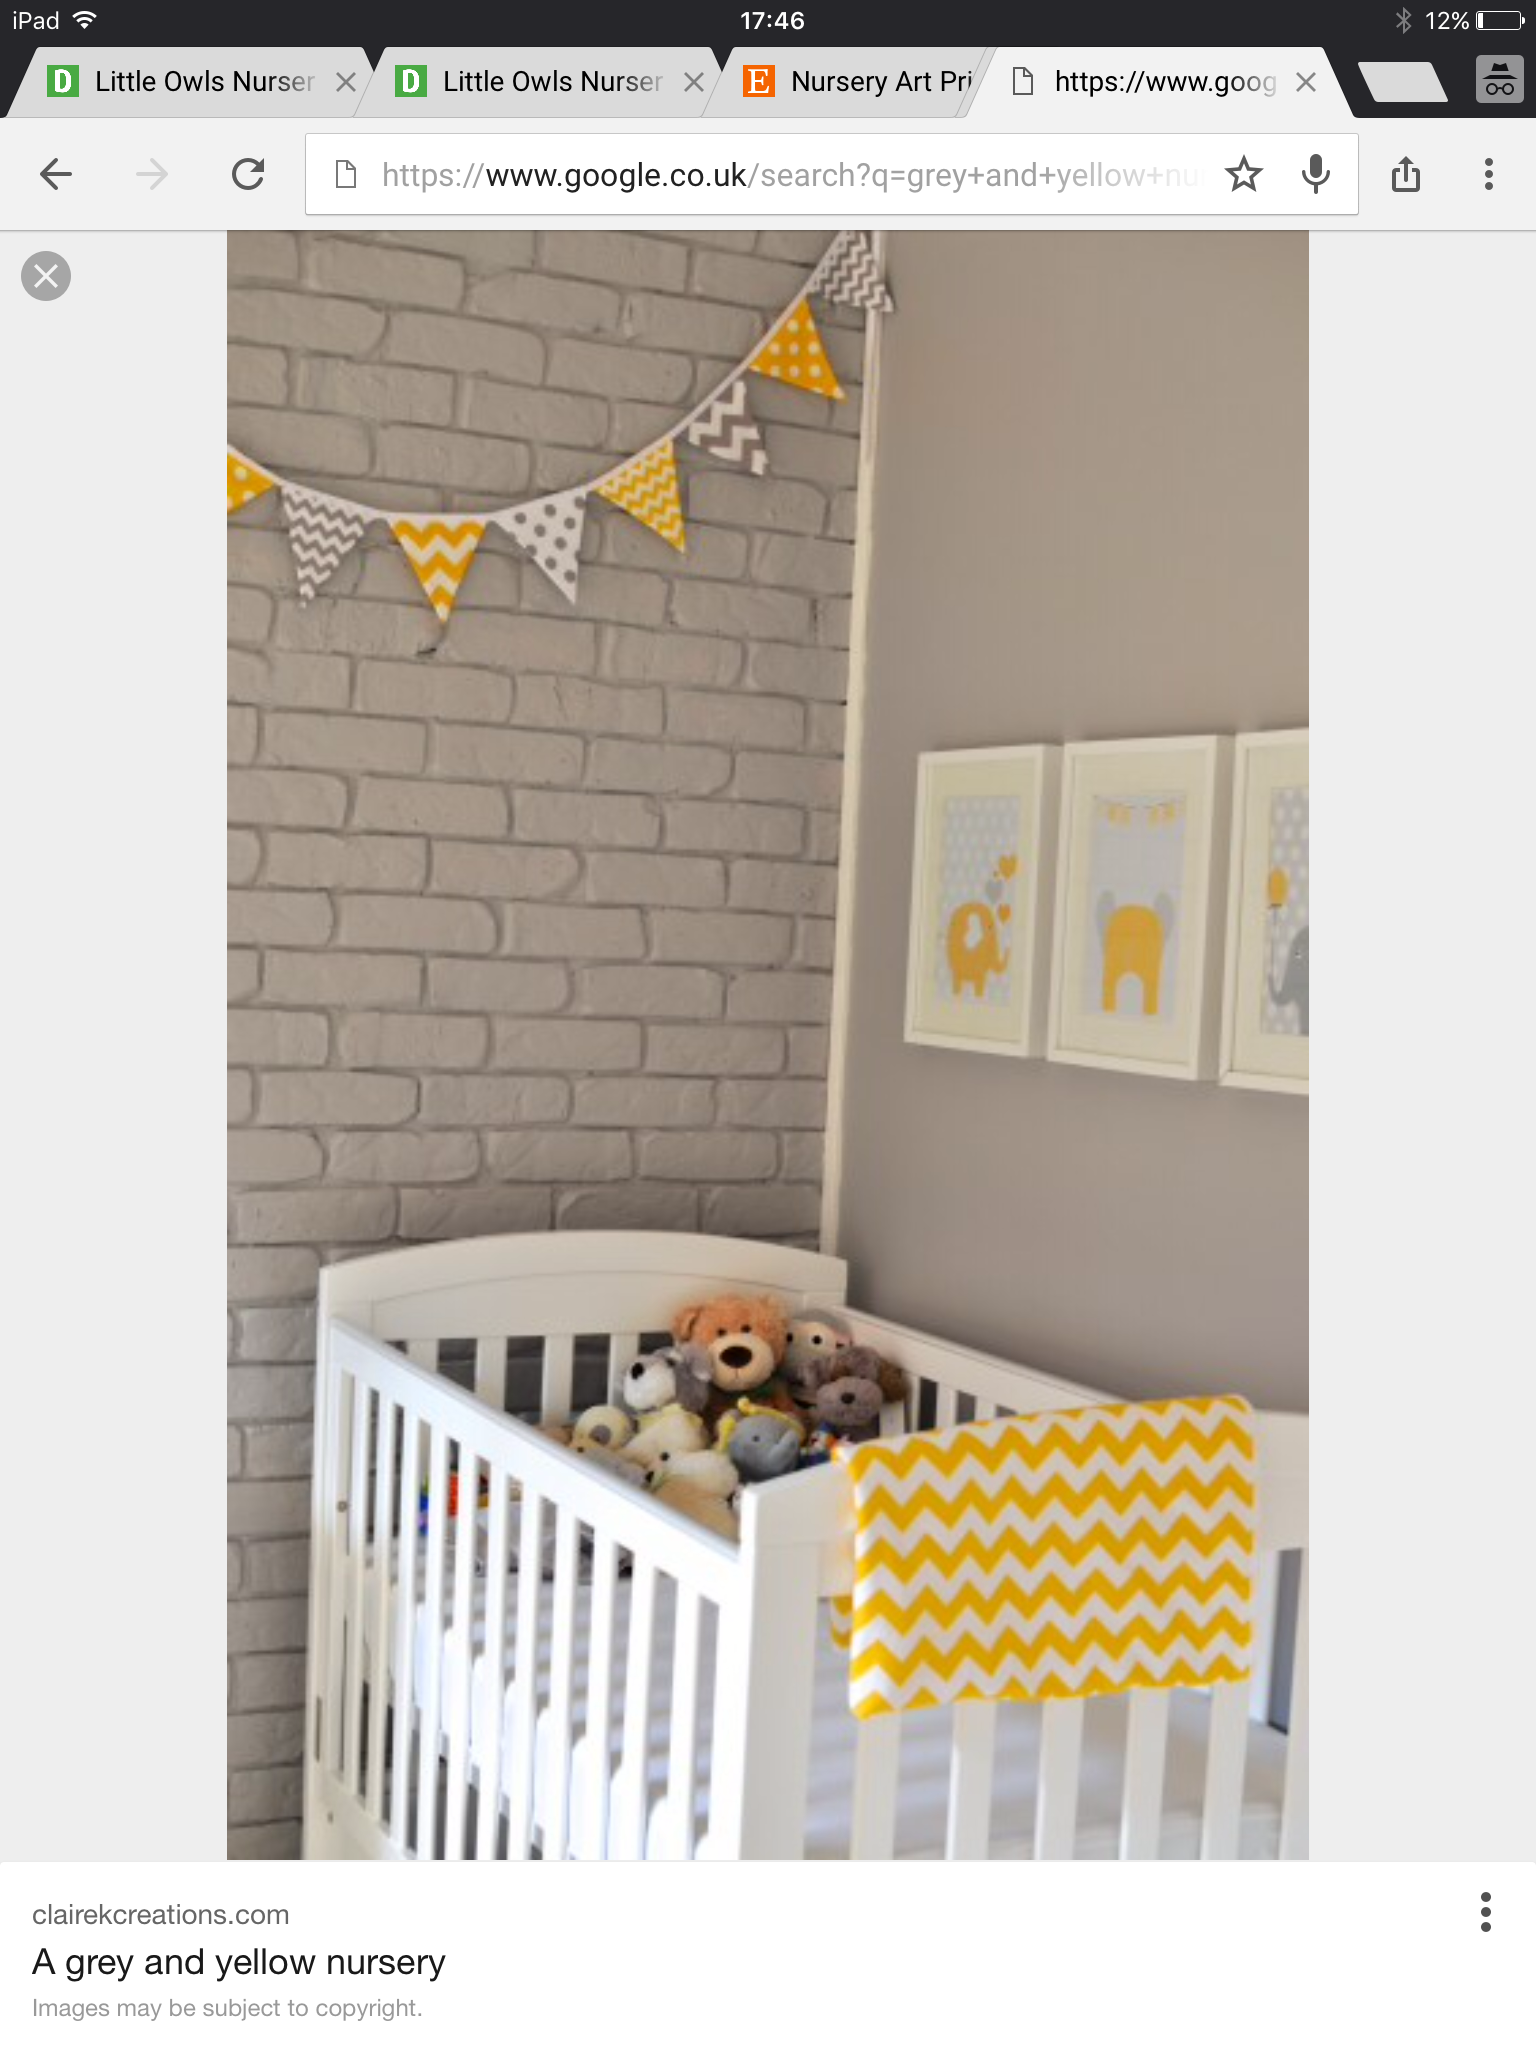 The grey and yellow nursery